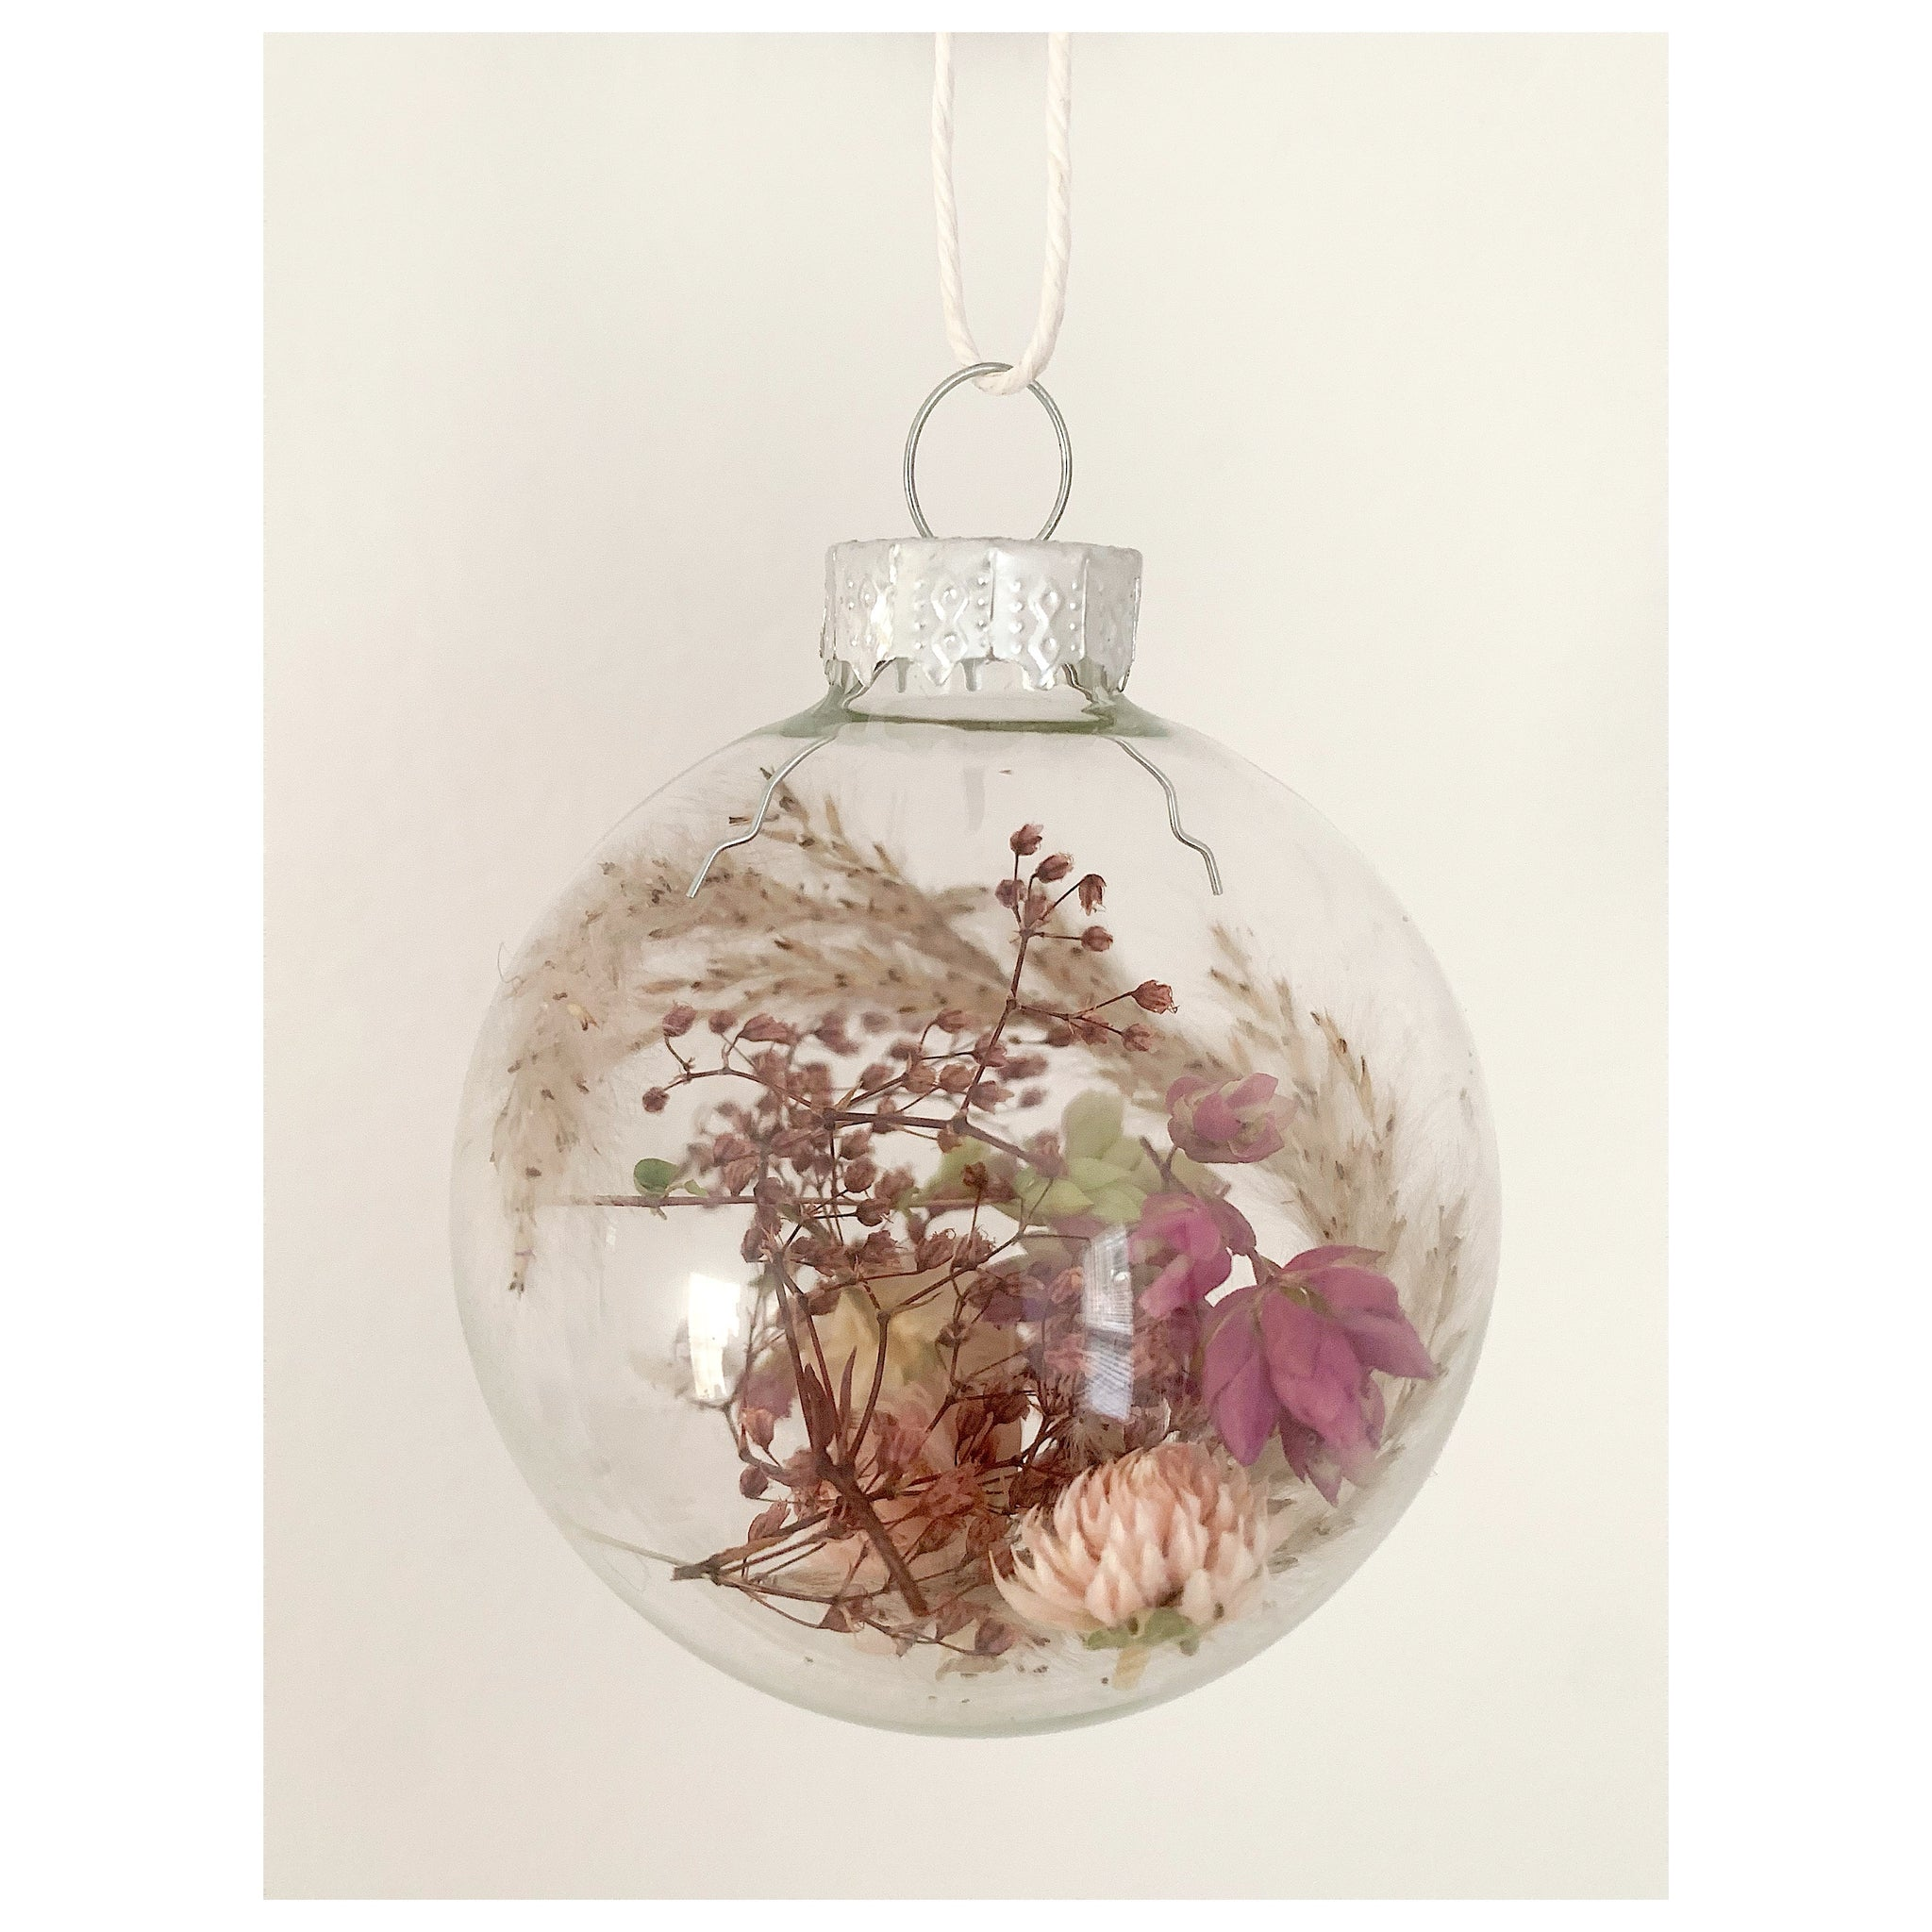 Oregano, Baby's Breath, and Globe Amaranth Glass Ornament